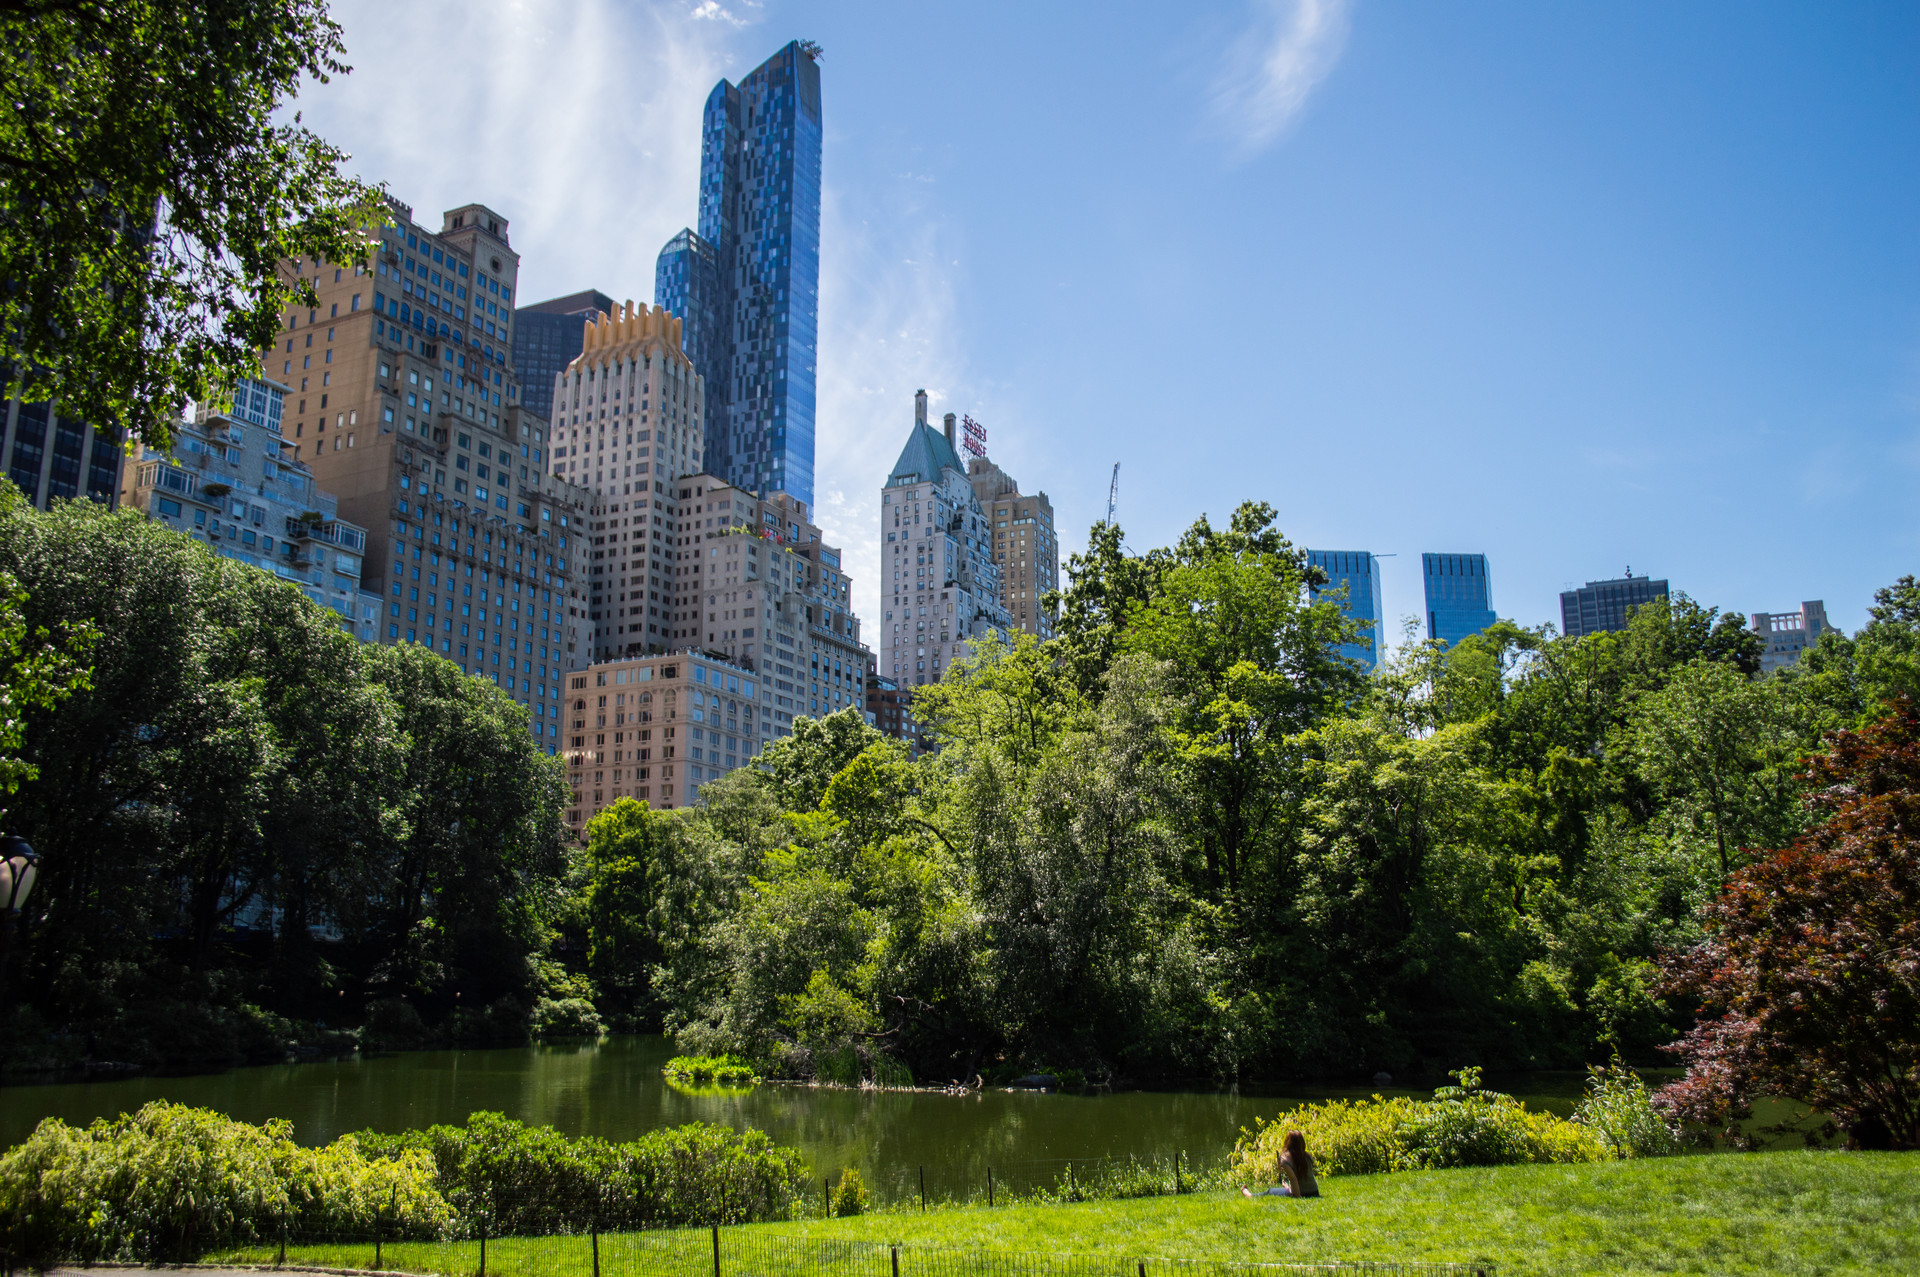 Central Park, Manhattan, New York / USA · 2016